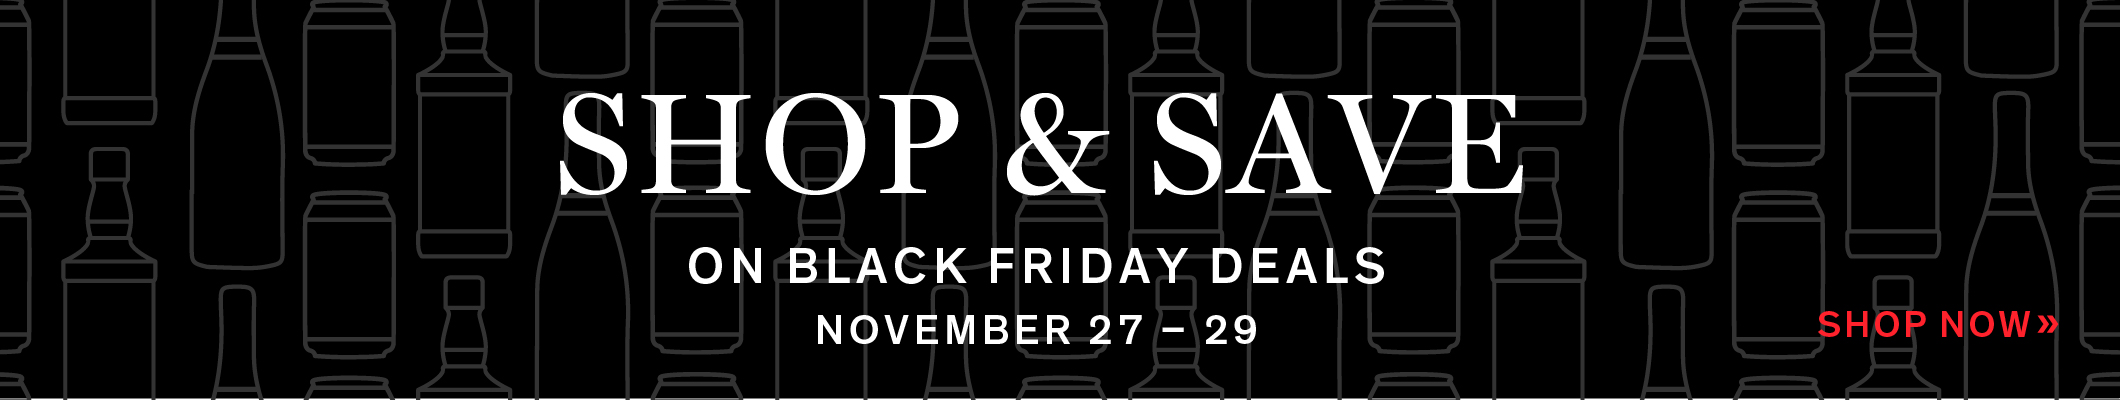 SHOP & SAVE ON BLACK FRIDAY DEALS - NOVEMBER 27 - 29. SHOW NOW!